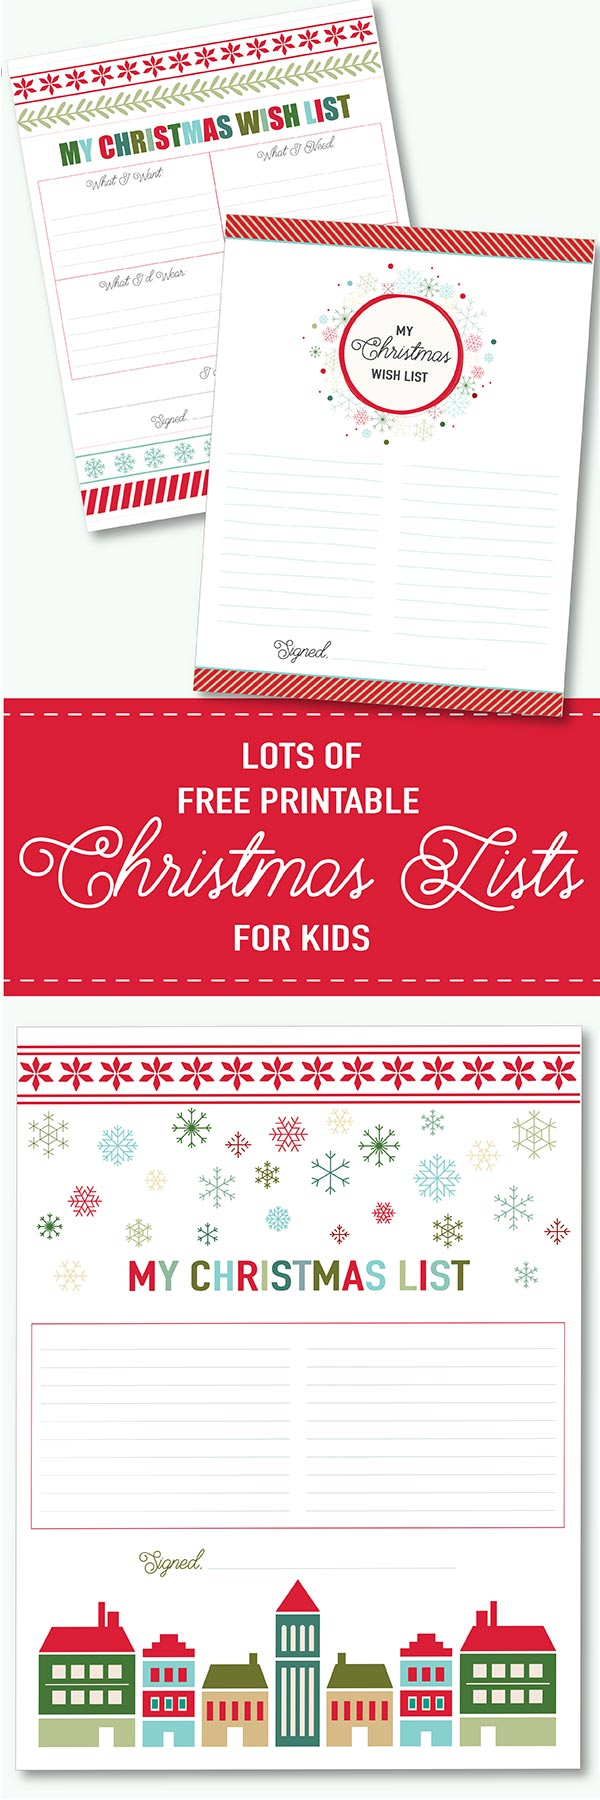 lots of free printable Christmas Wish Lists for kids to print at home!